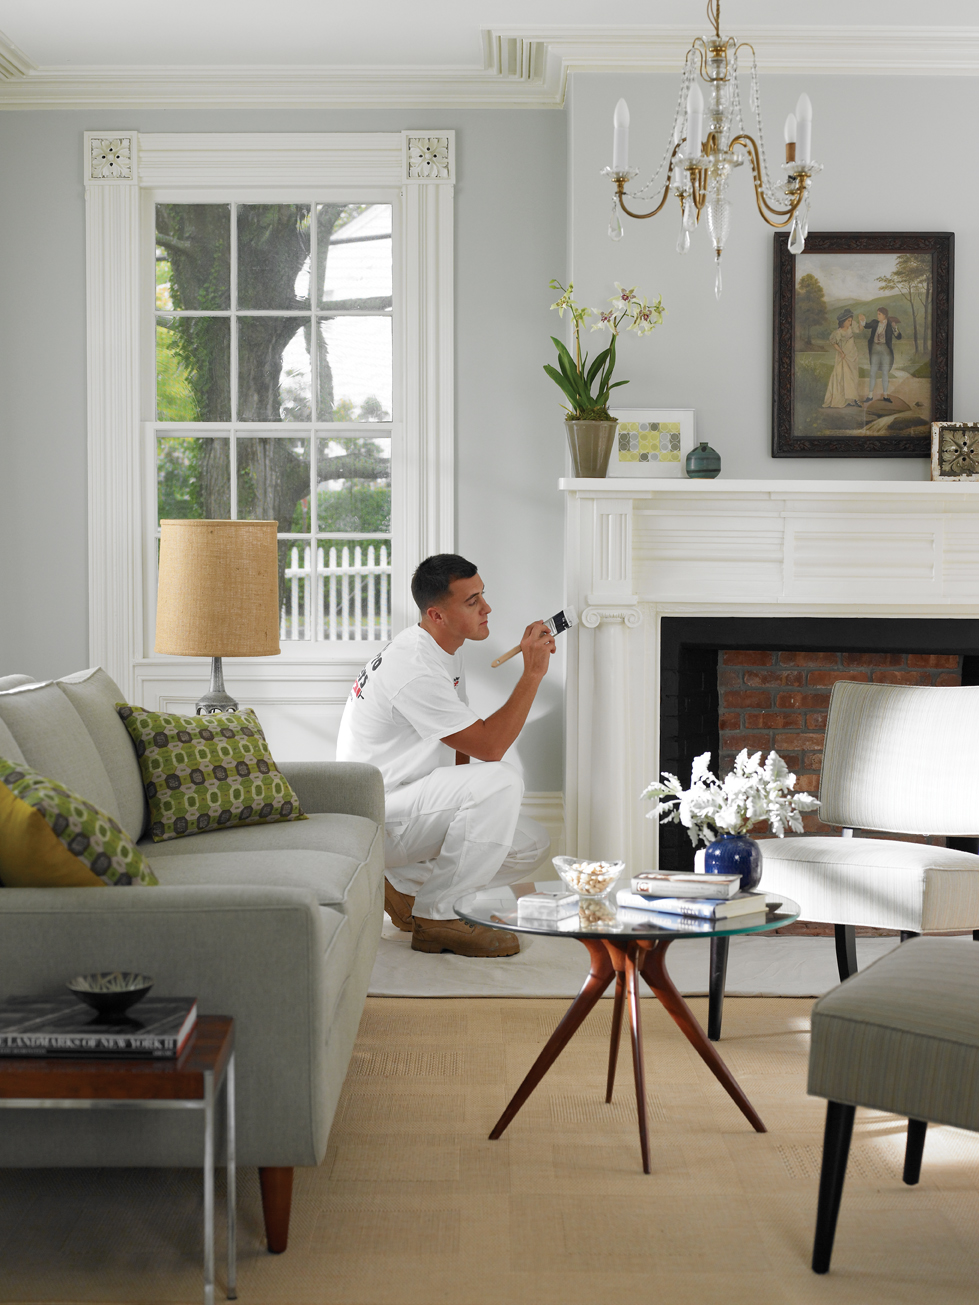 Interior house painting tips cleveland artisans for Home painting